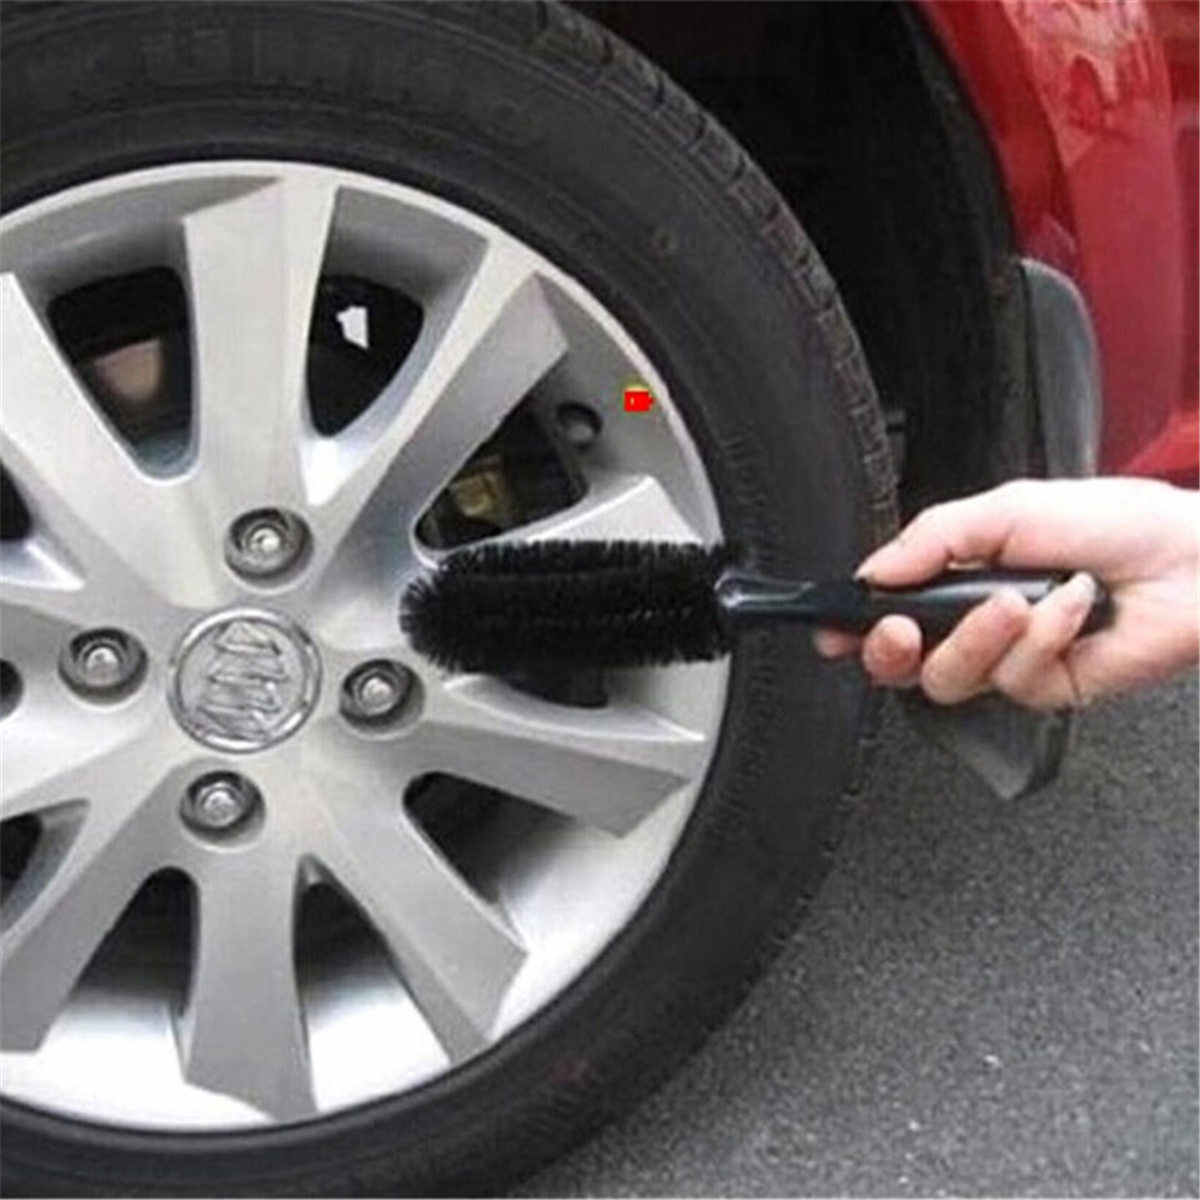 Car Brush Tool for Auto Car Truck Motorcycle Bicycle Washing Cleaning Hang-heldTool Vehicle Wheel Tire Rim Scrub